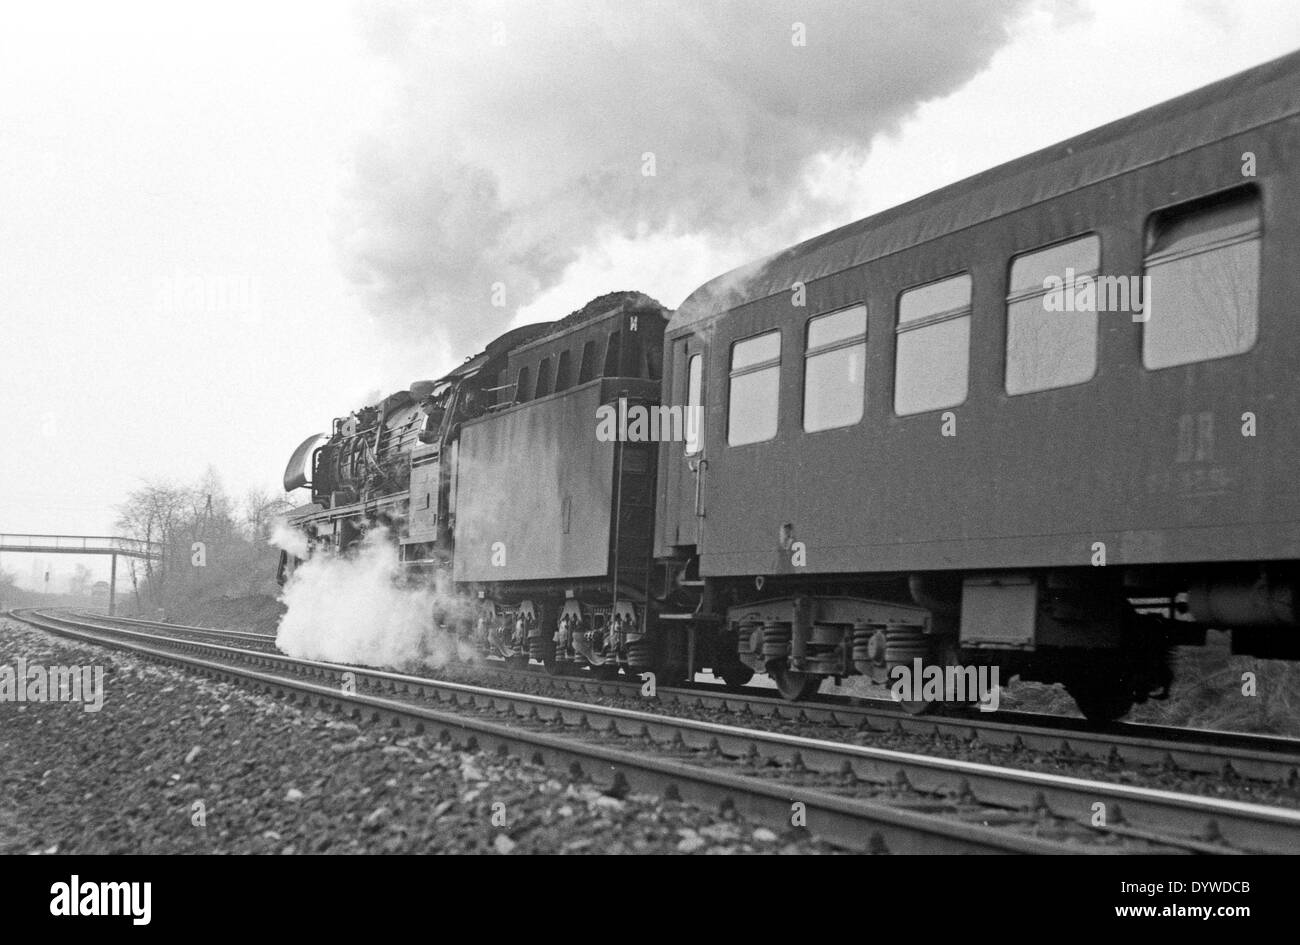 Berlin, DDR, steam locomotive with freight train on tracks - Stock Image